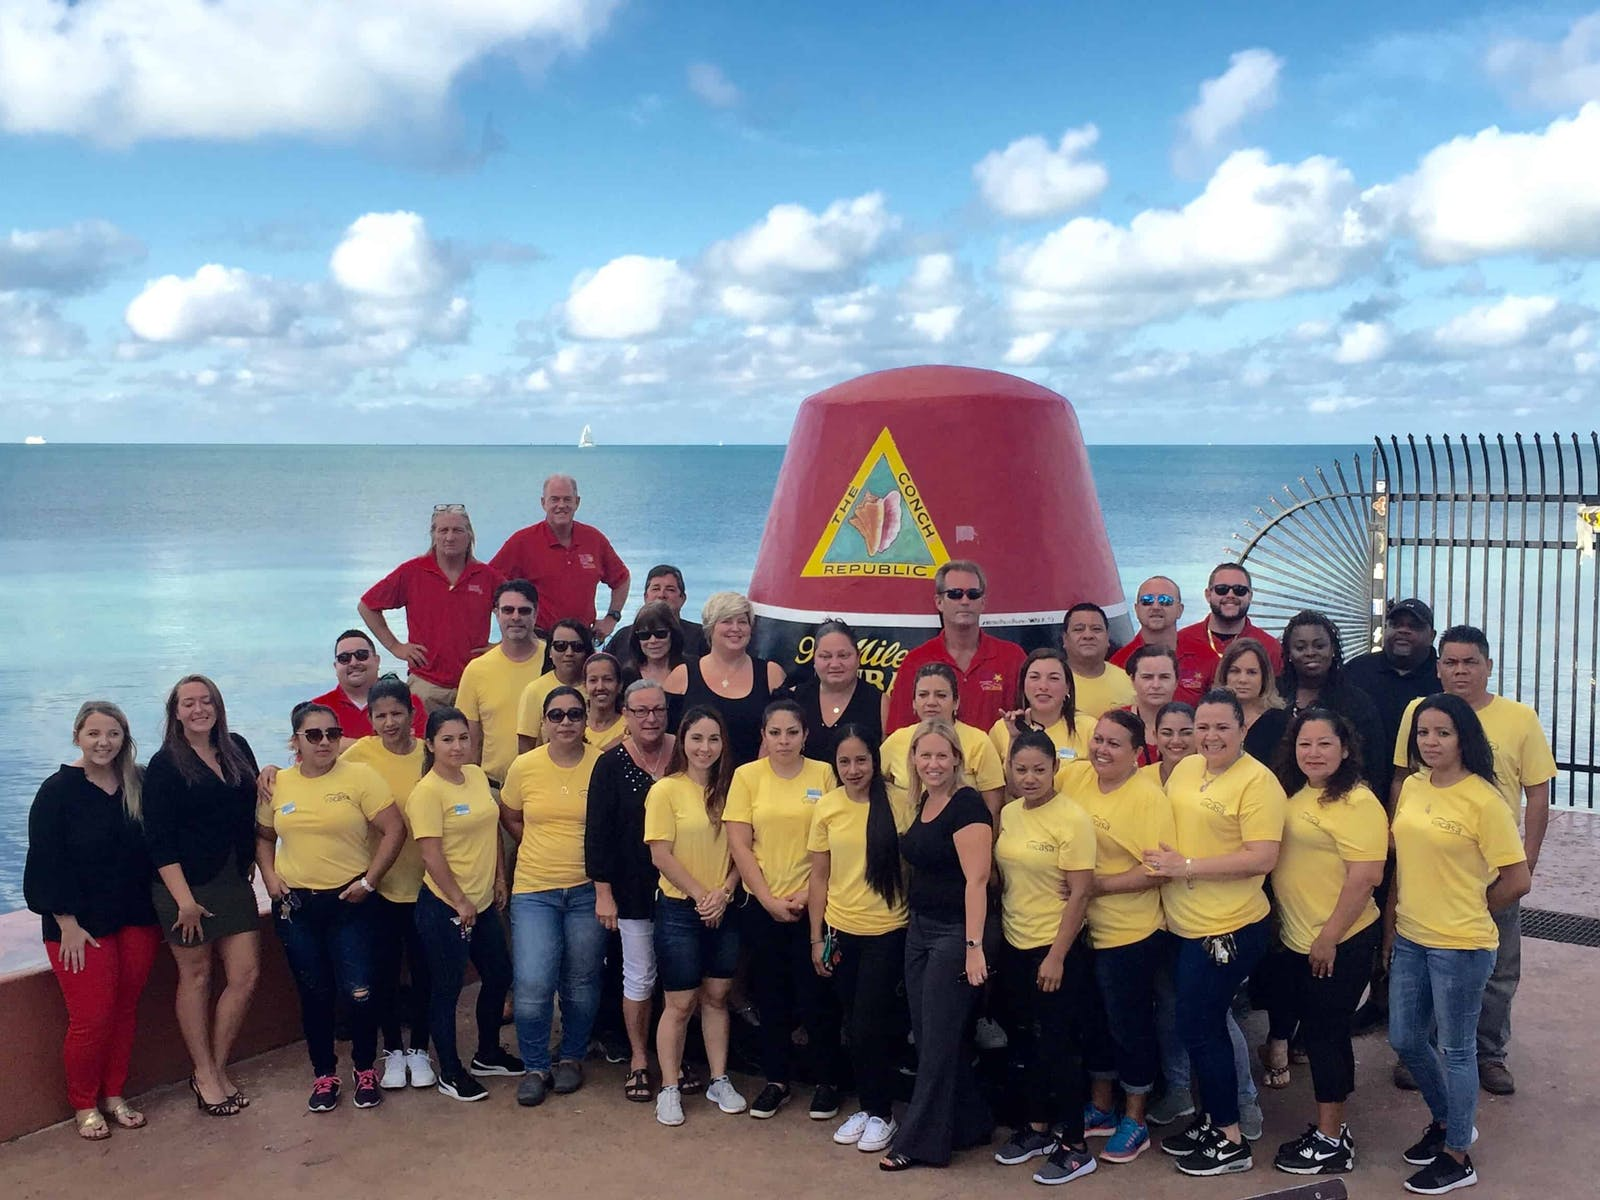 The Vacasa team taking a group photo in Key West, FL